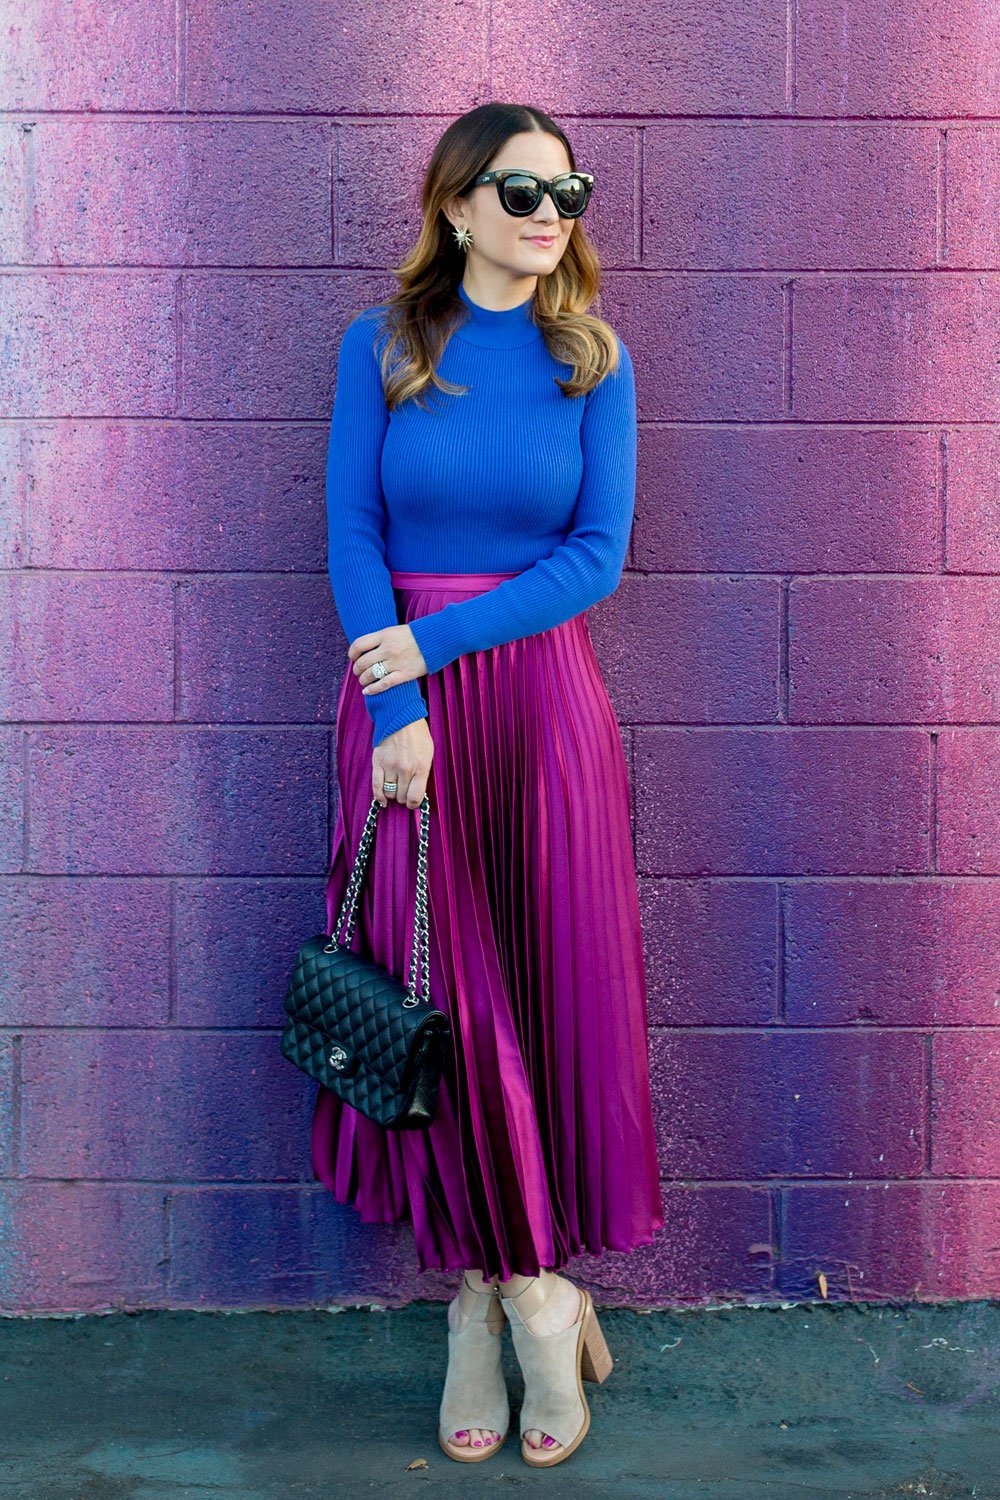 Jennifer Lake Style Charade leaning in an ASOS purple pleated midi skirt, cobalt blue sweater bodysuit and Chanel quilted flap bag at a dripping paint wall in Los Angeles